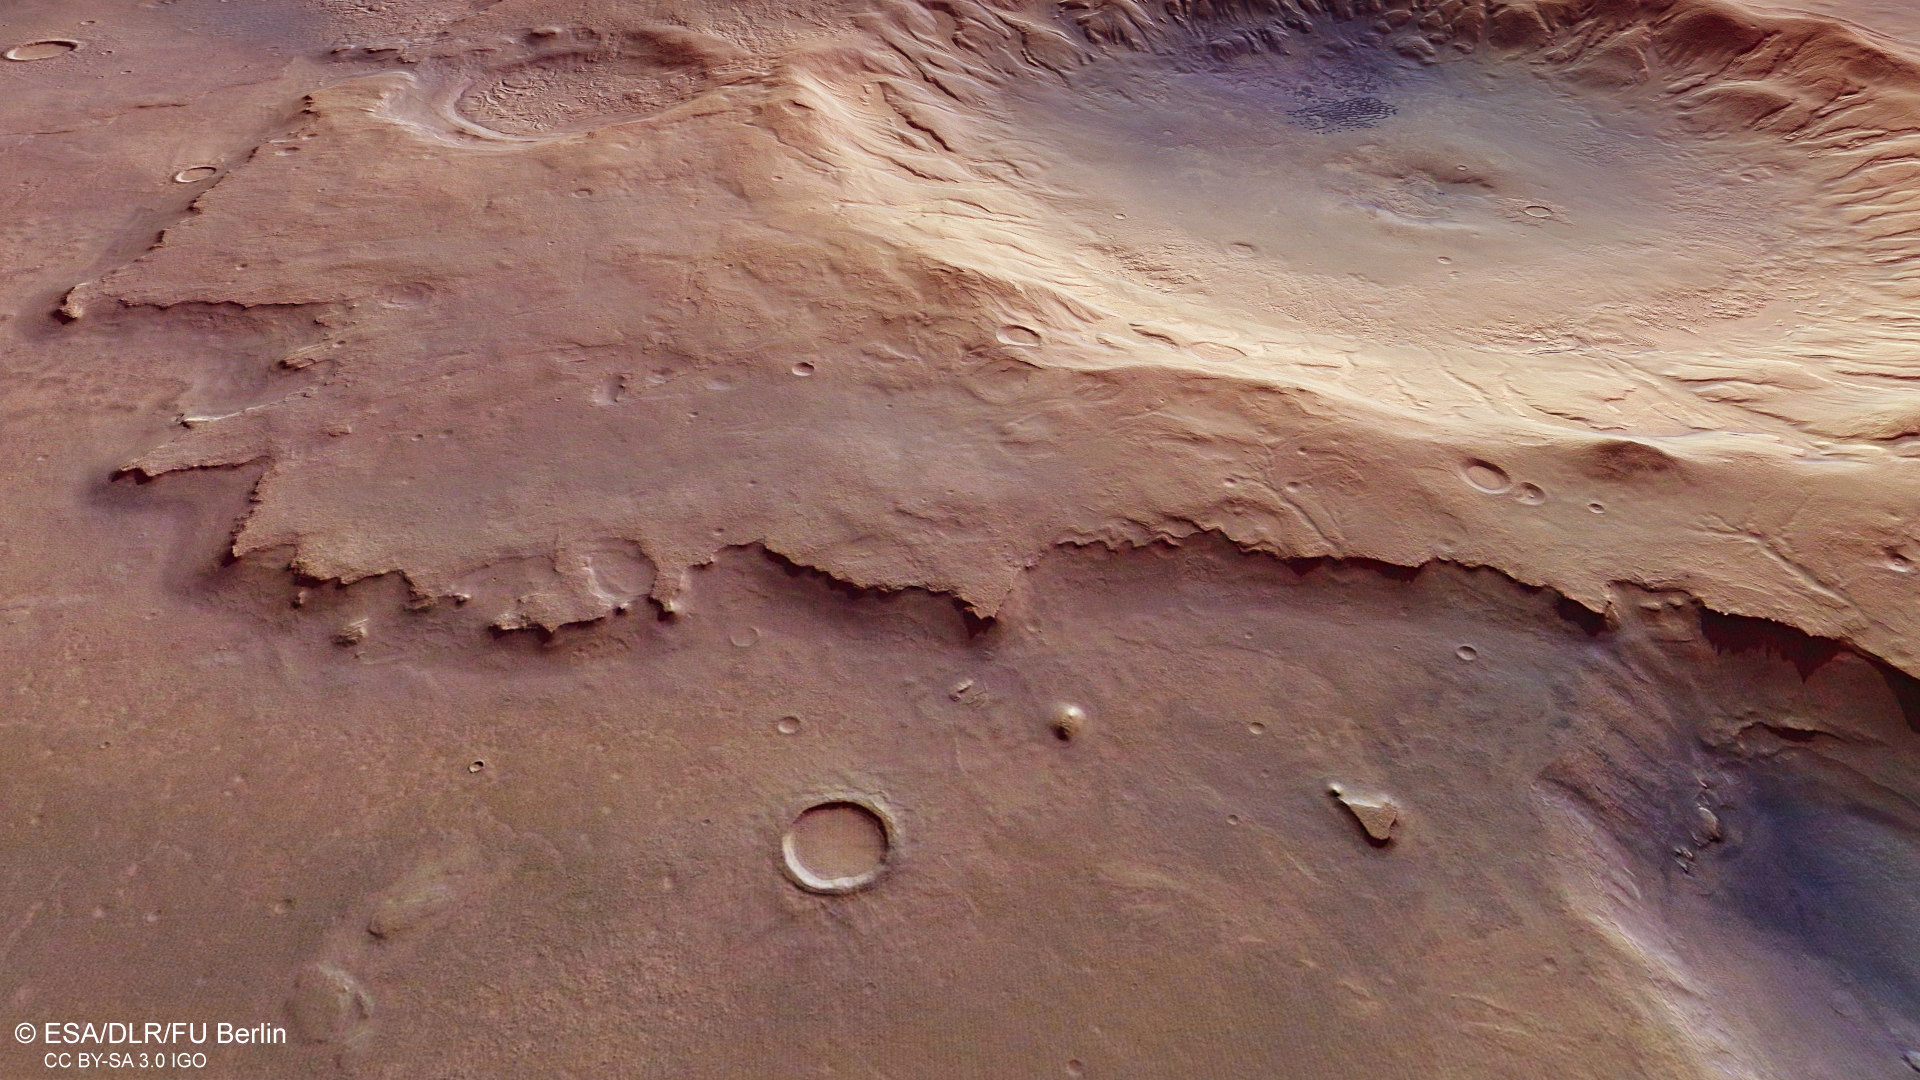 Mars_Express_spies_a_nameless_and_ancient_impact_crater